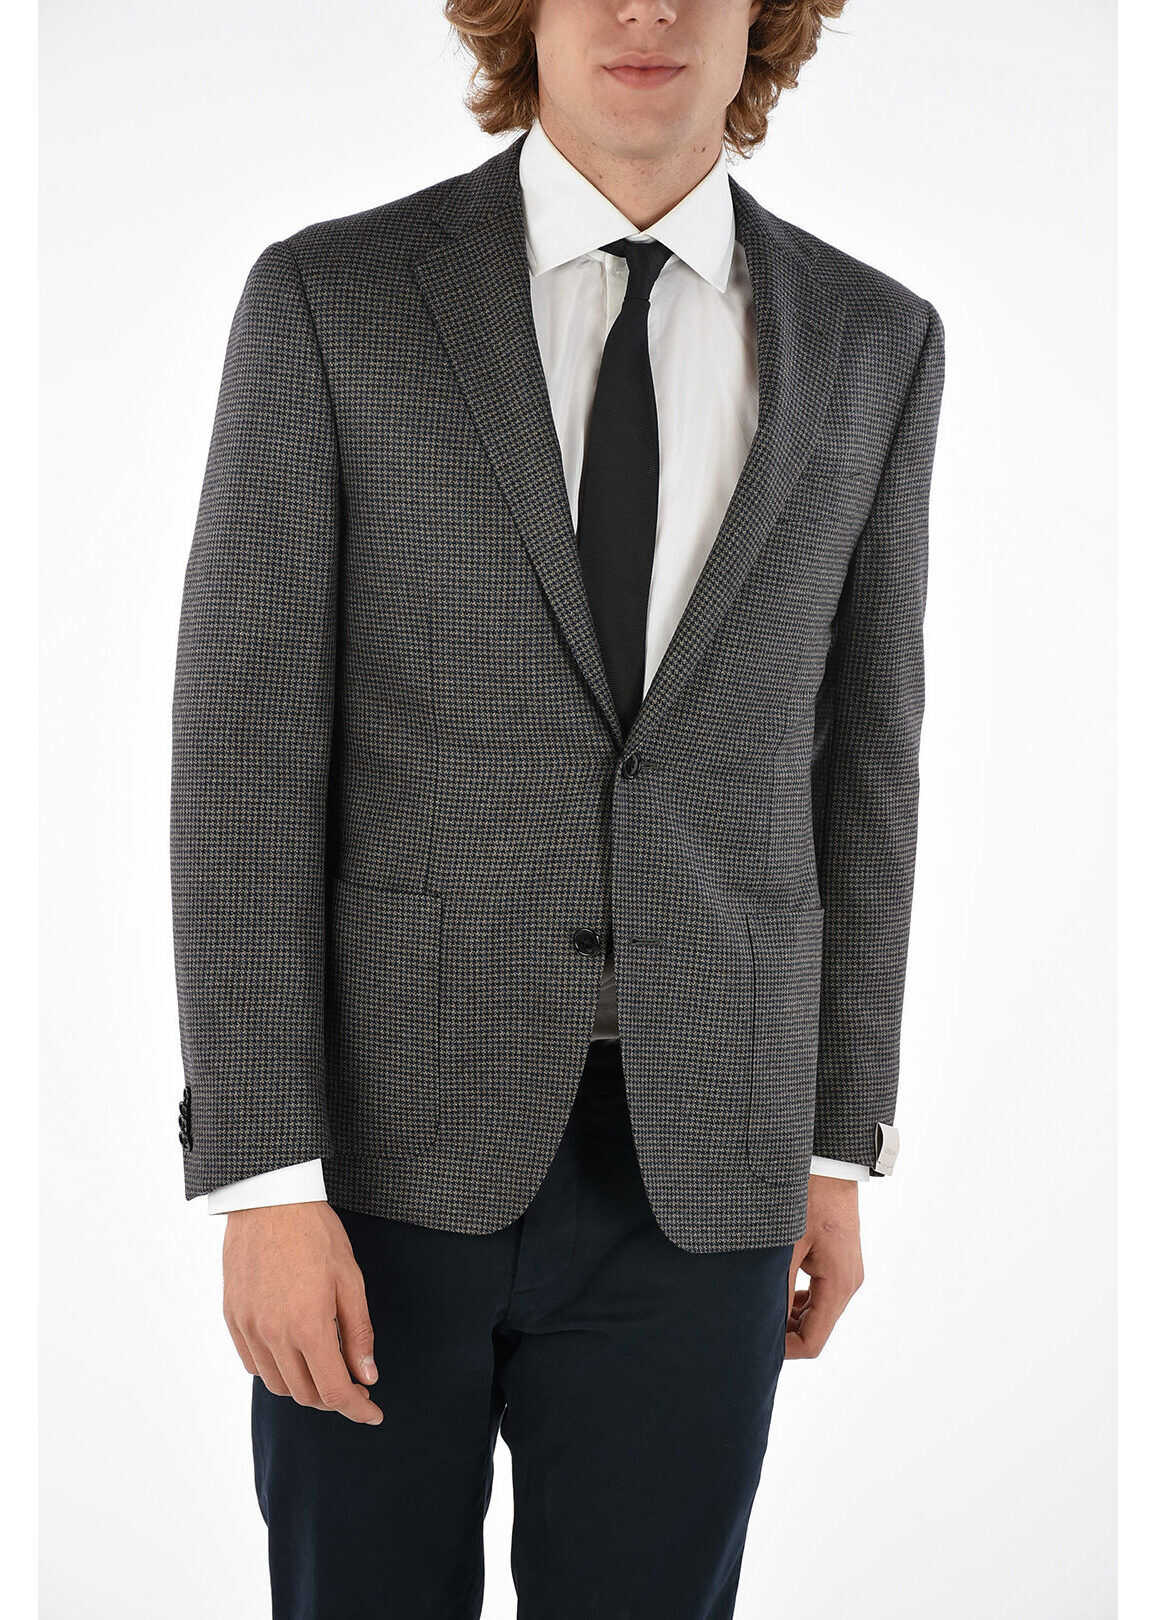 CORNELIANI houndstooth GATE 2-button jacket with side vents BEIGE imagine